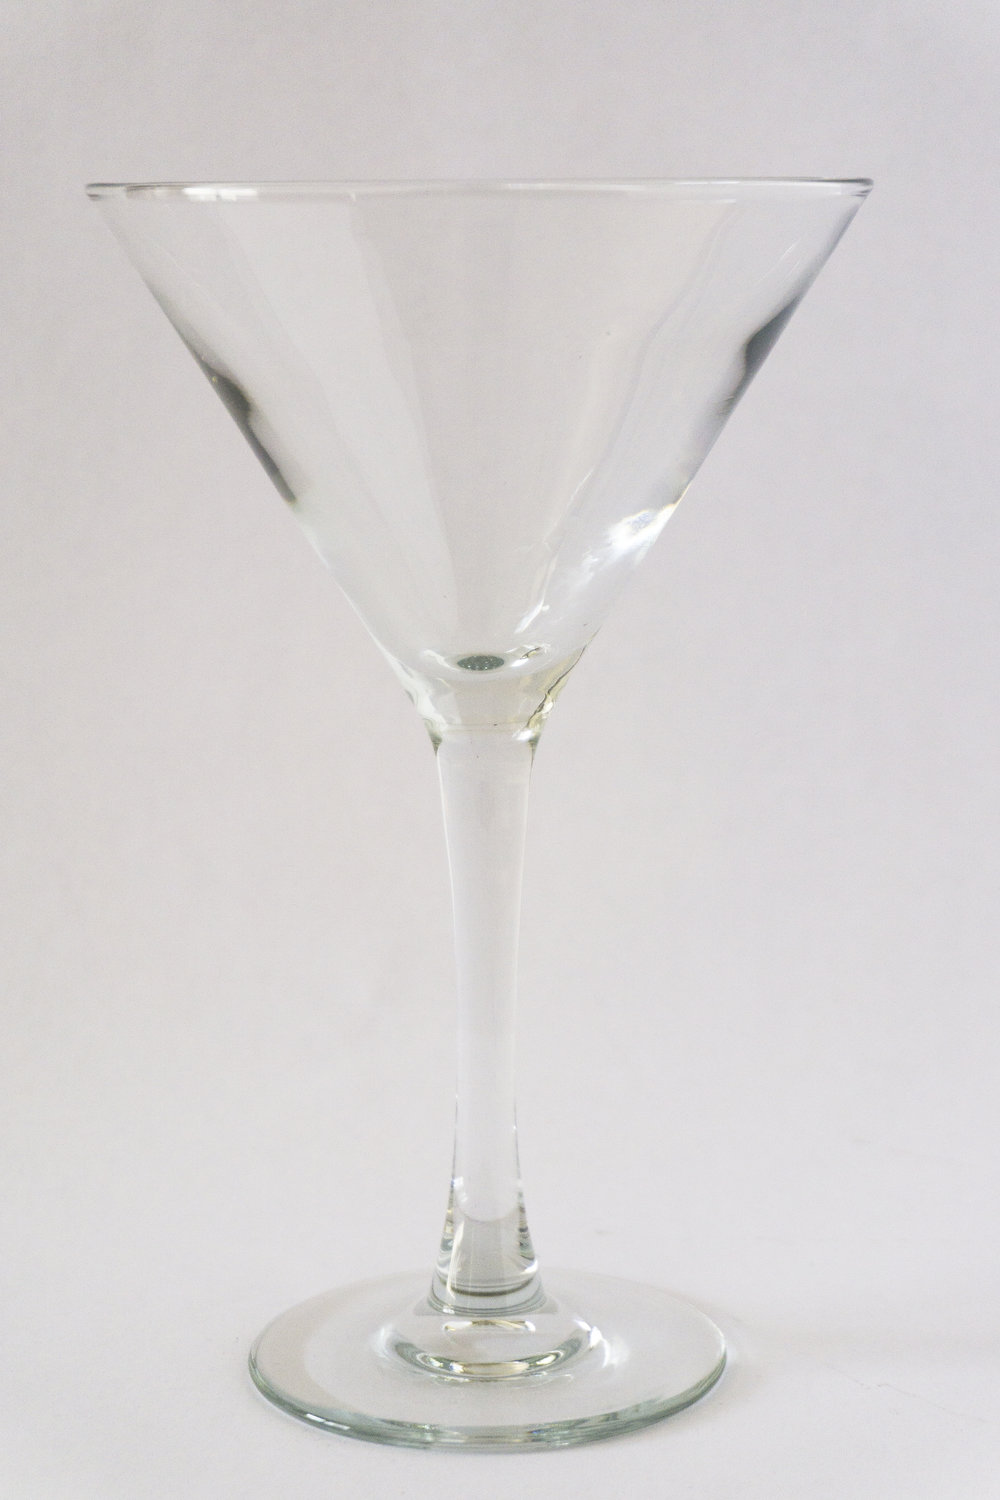 12 oz. Martini Glass  $1.15 each